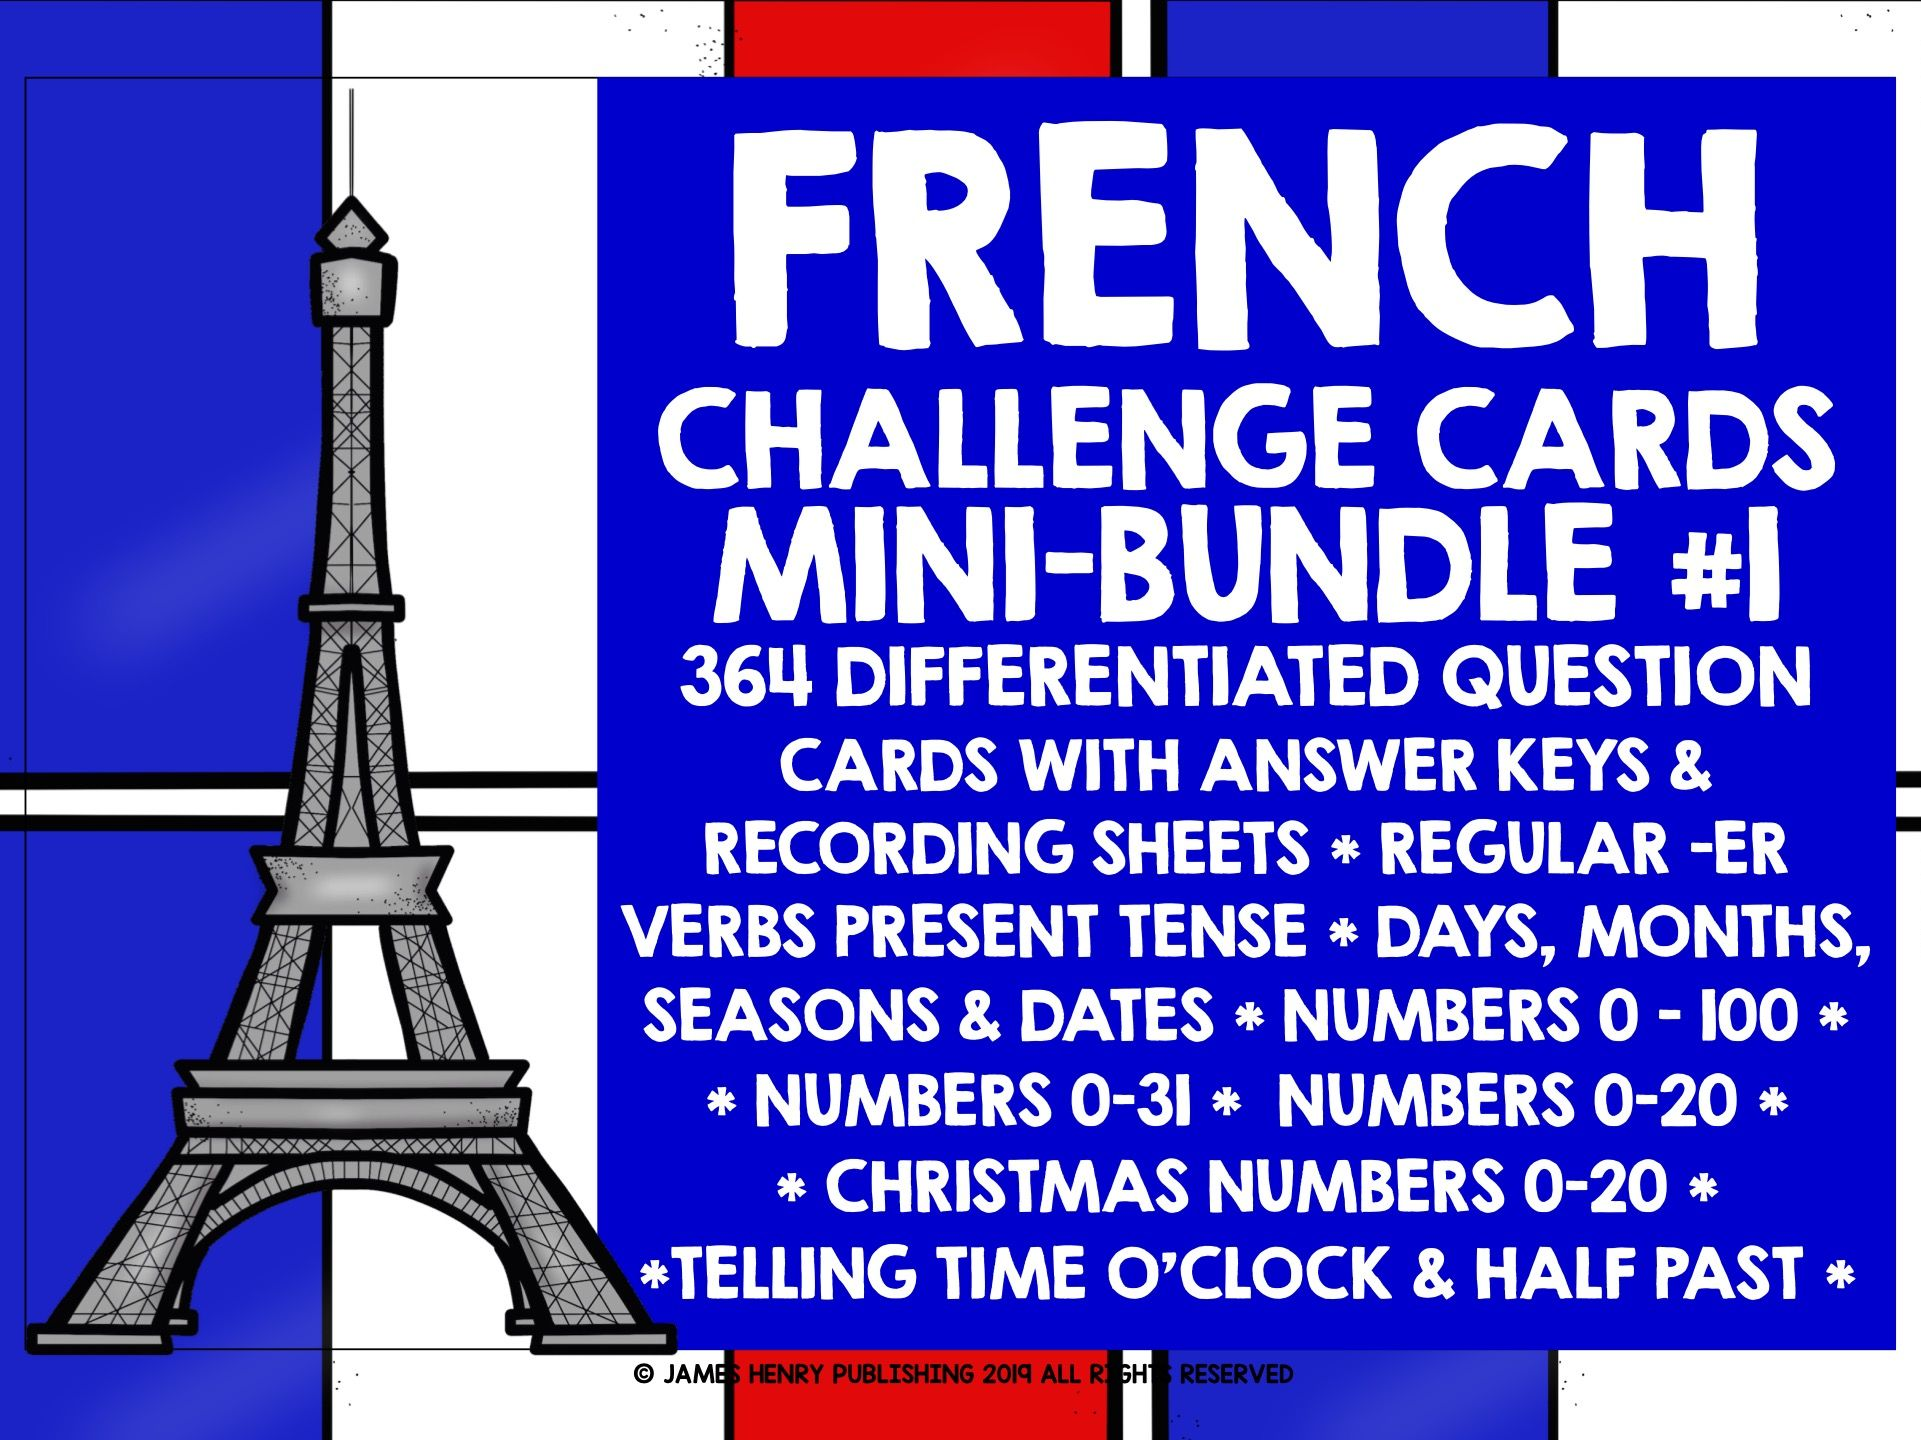 FRENCH CHALLENGE CARDS BUNDLE #1